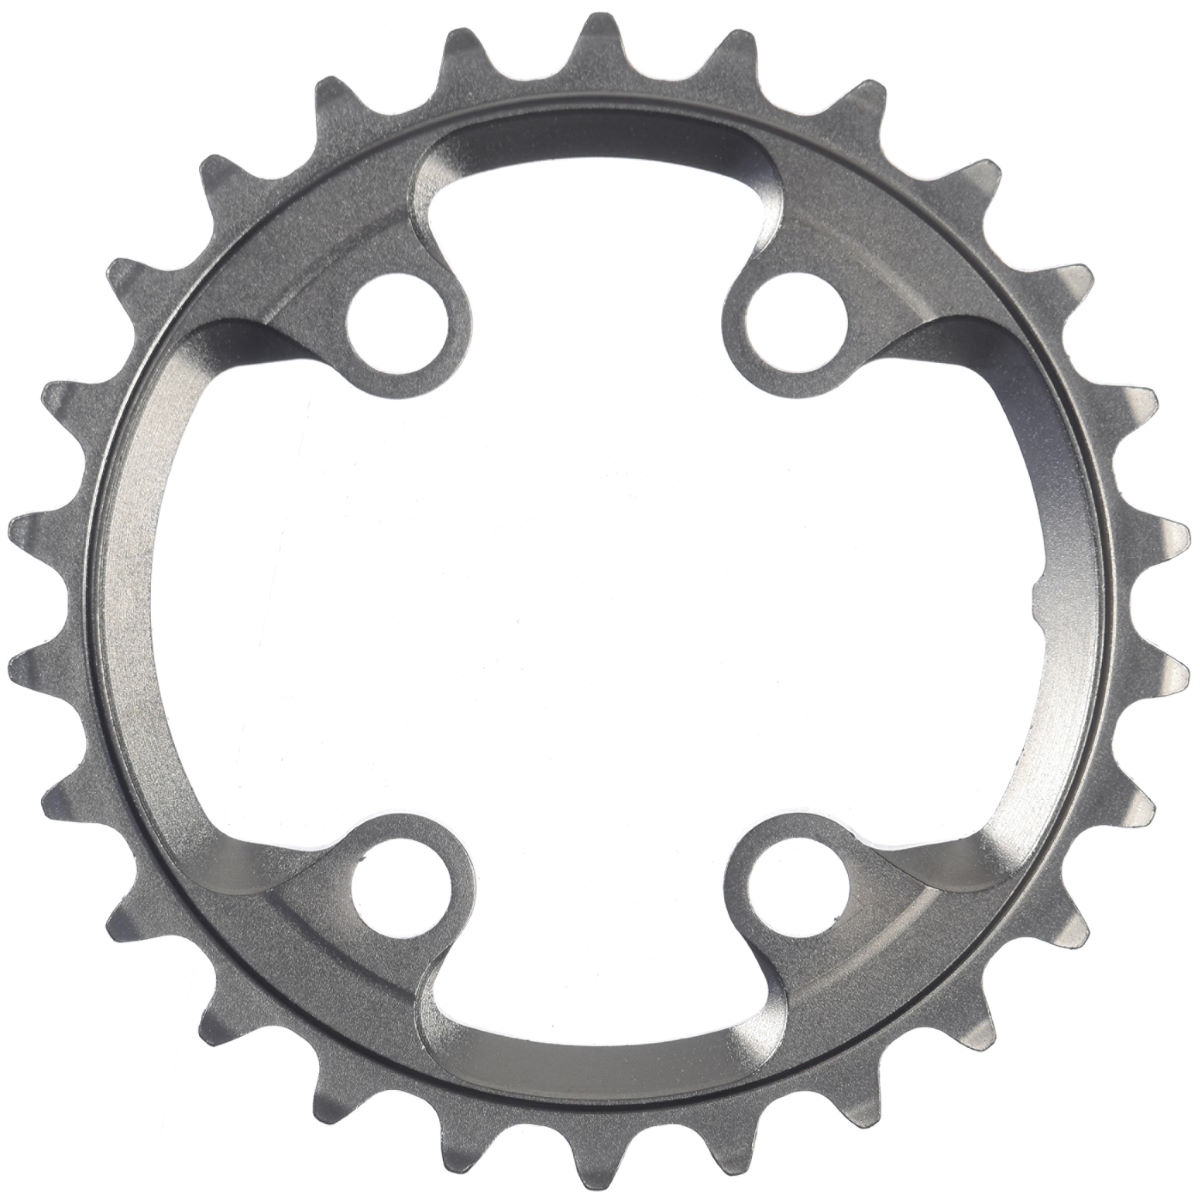 Shimano Xtr Fcm9000-m9020 11sp Double Chainrings - 36t 11 Speed Double